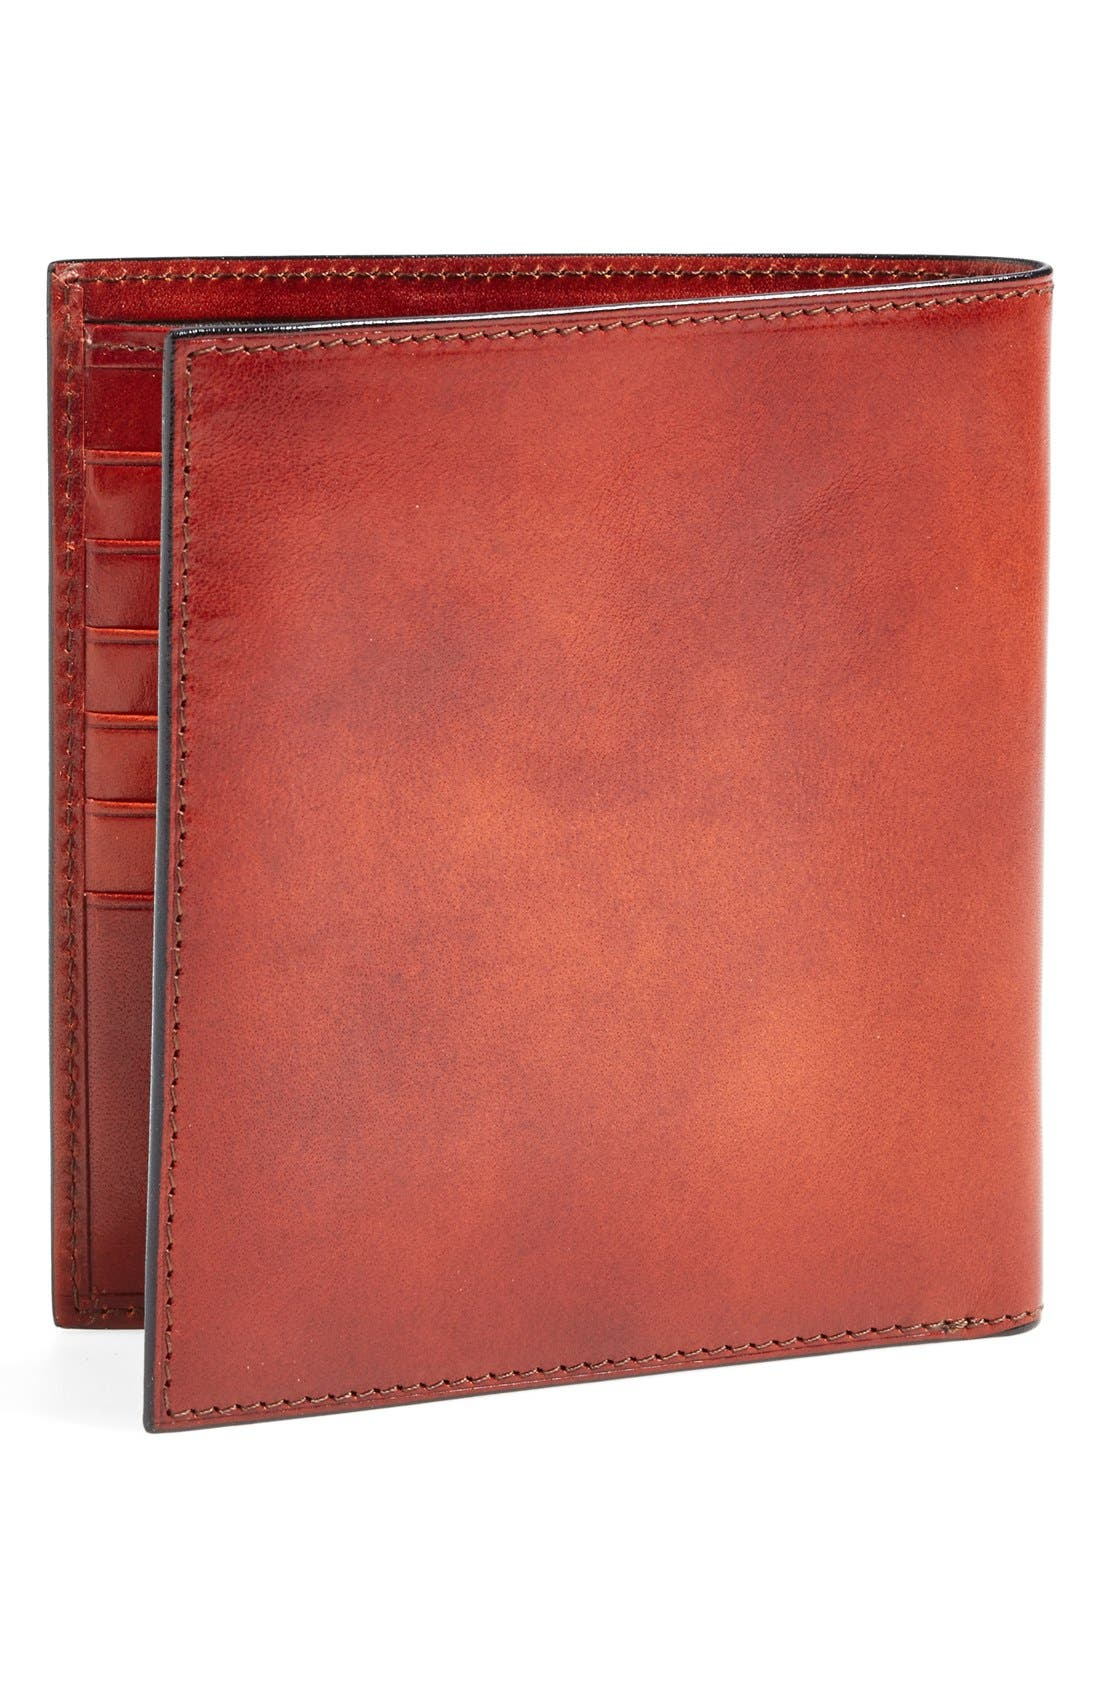 Alternate Image 3  - Bosca 'Old Leather' Credit Wallet